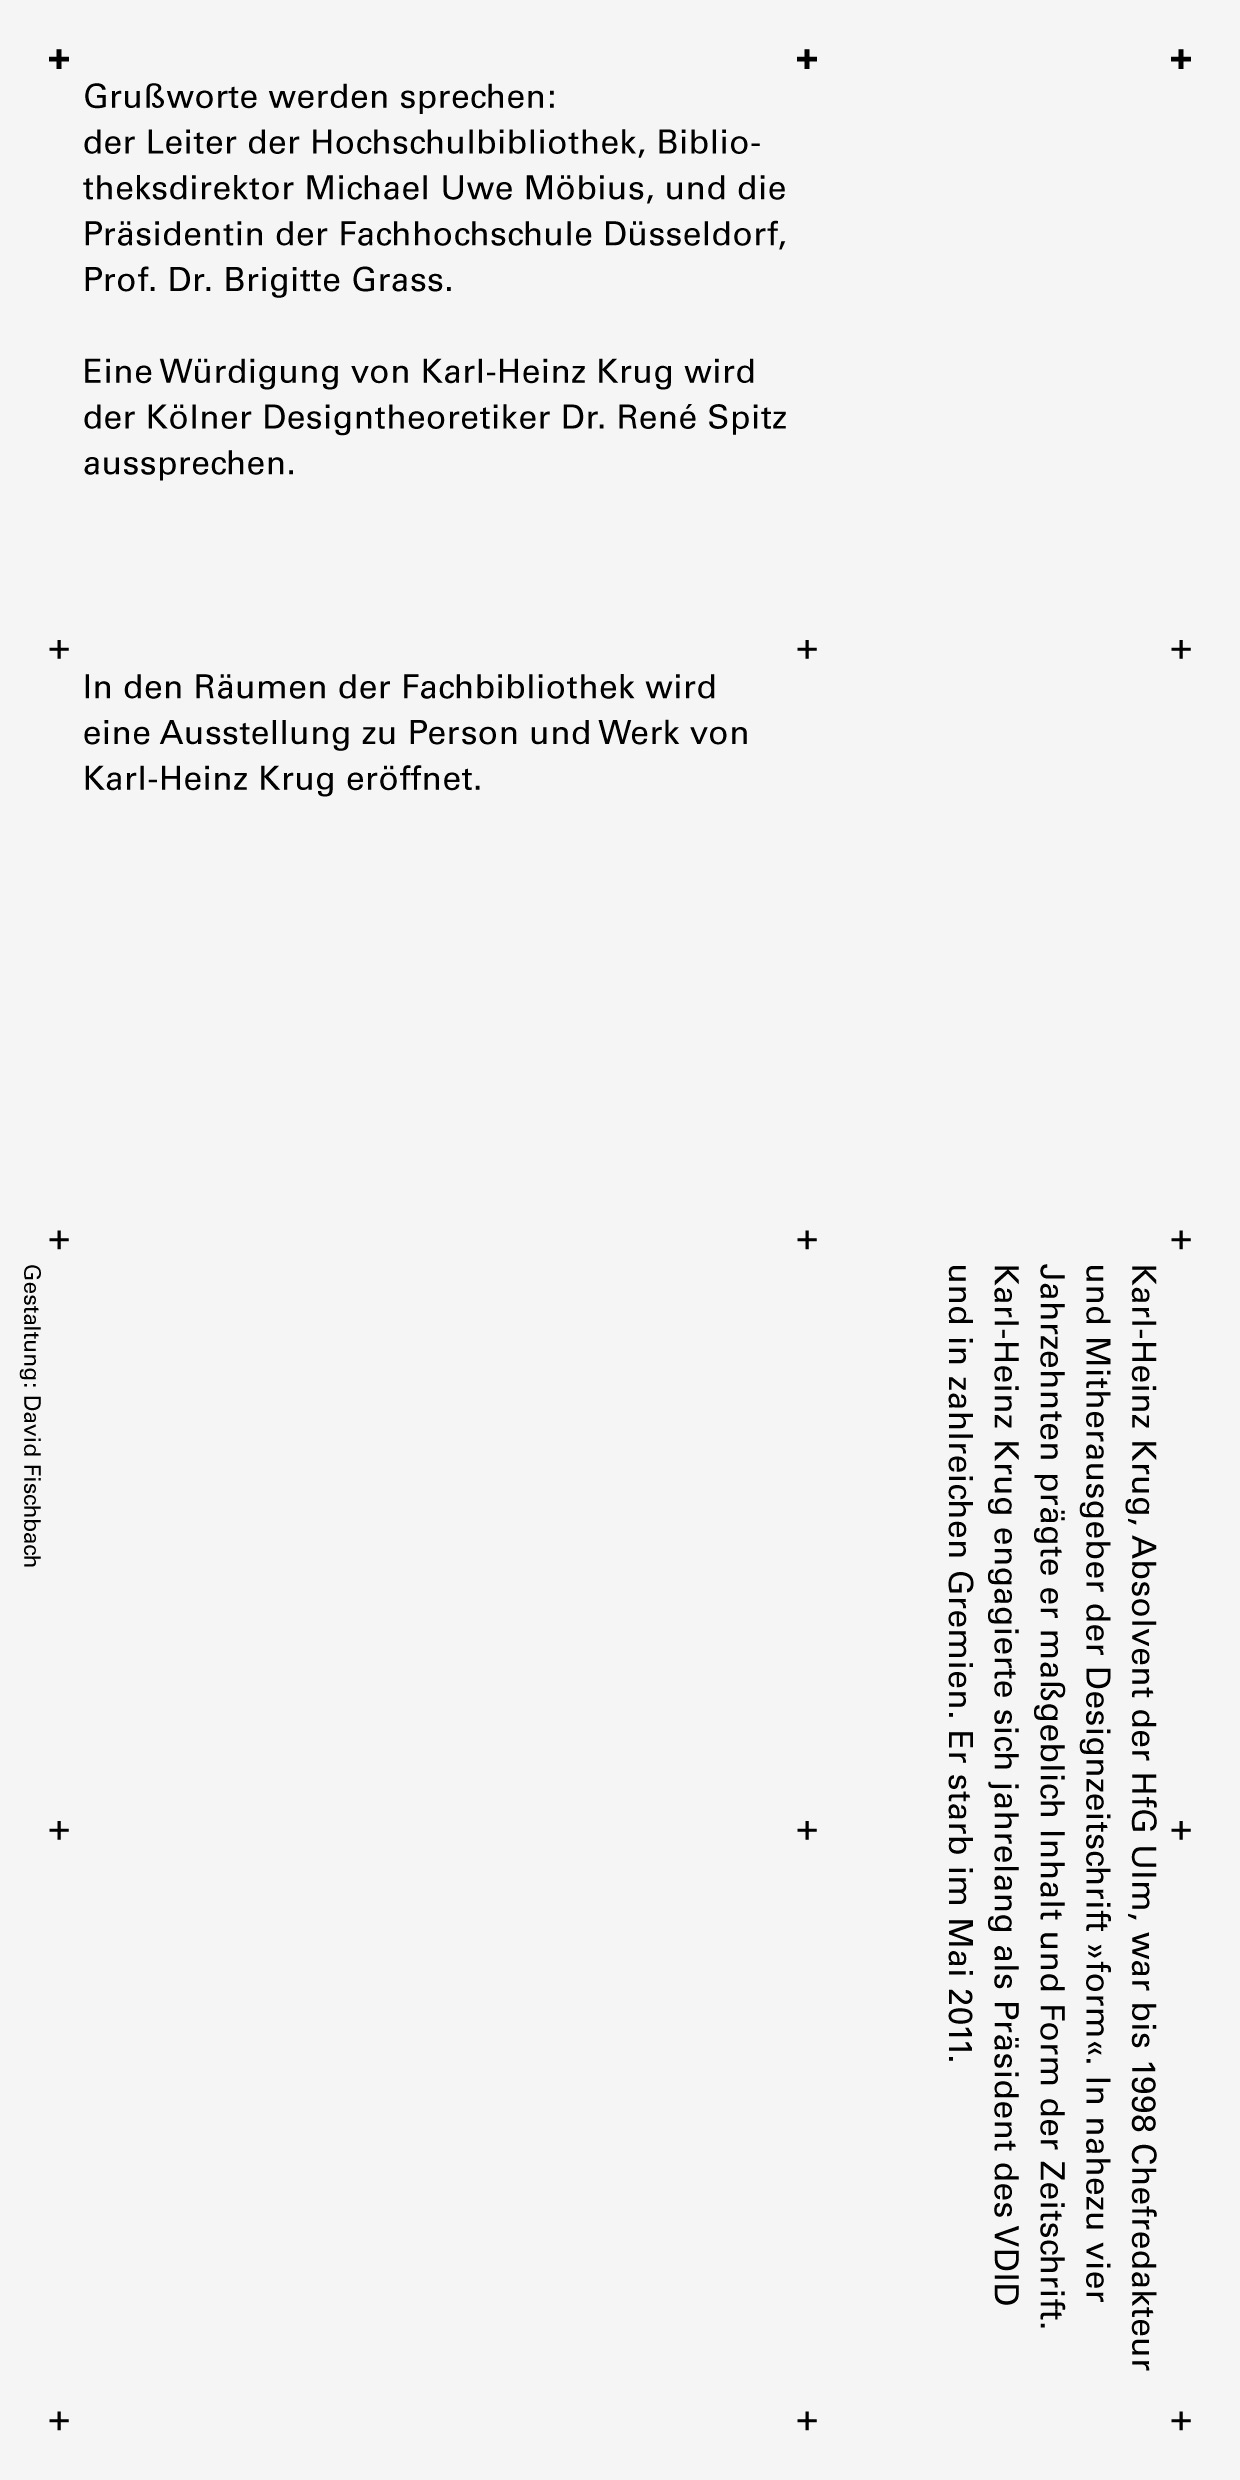 Invitation card, The Karl-Heinz Krug Research Library, back side